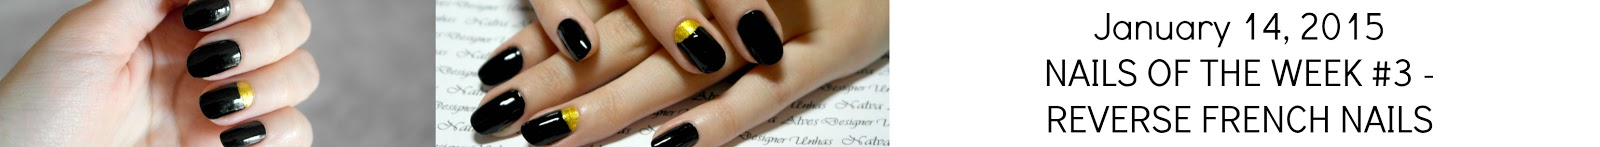 http://arckofbeauty.blogspot.pt/2015/01/nails-of-week-2-reverse-french-nails.html